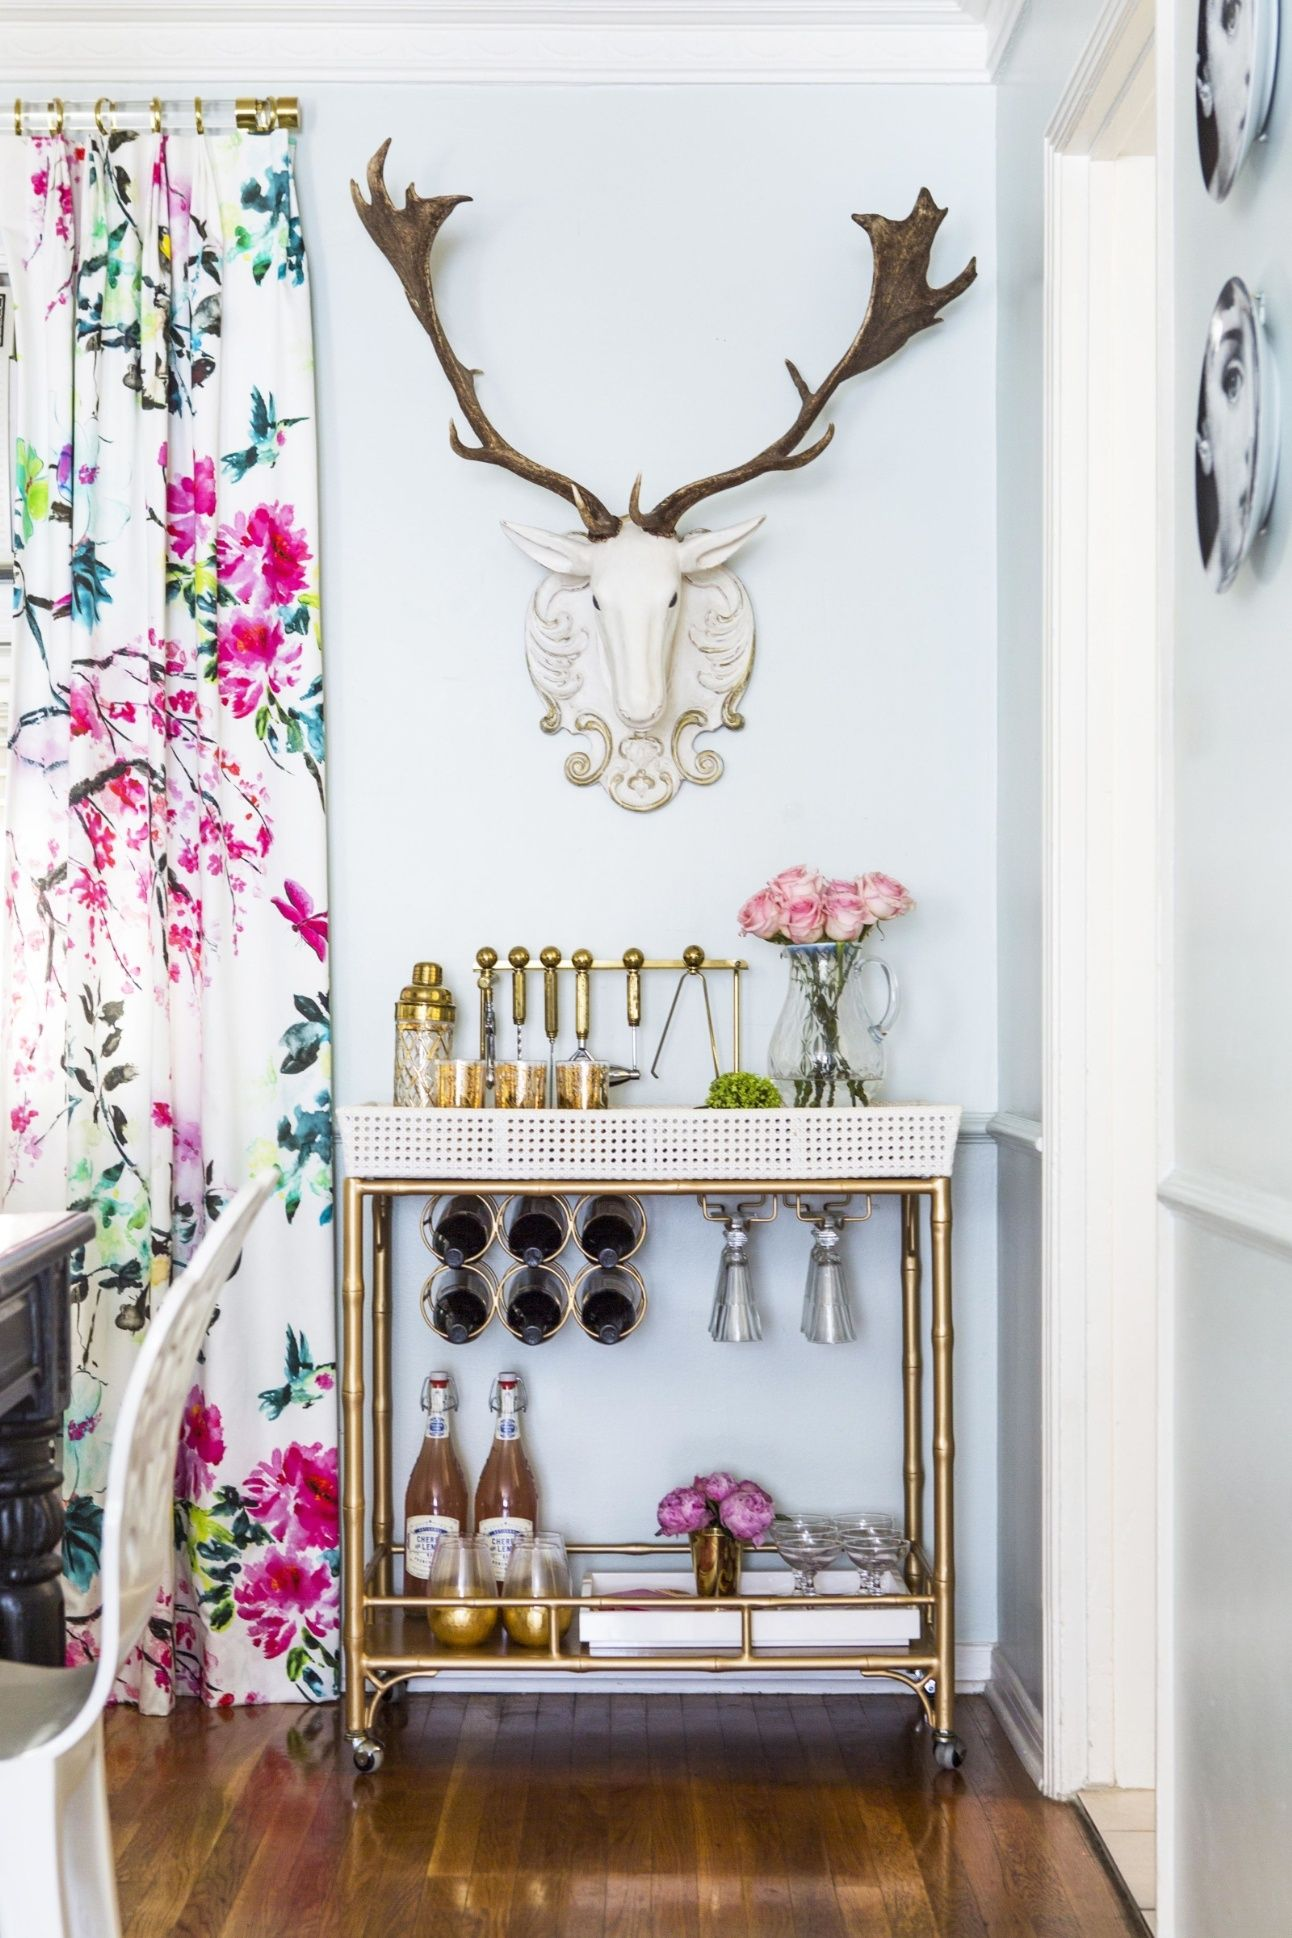 13 Home decor items interior designers agree you should spend a little more money on.